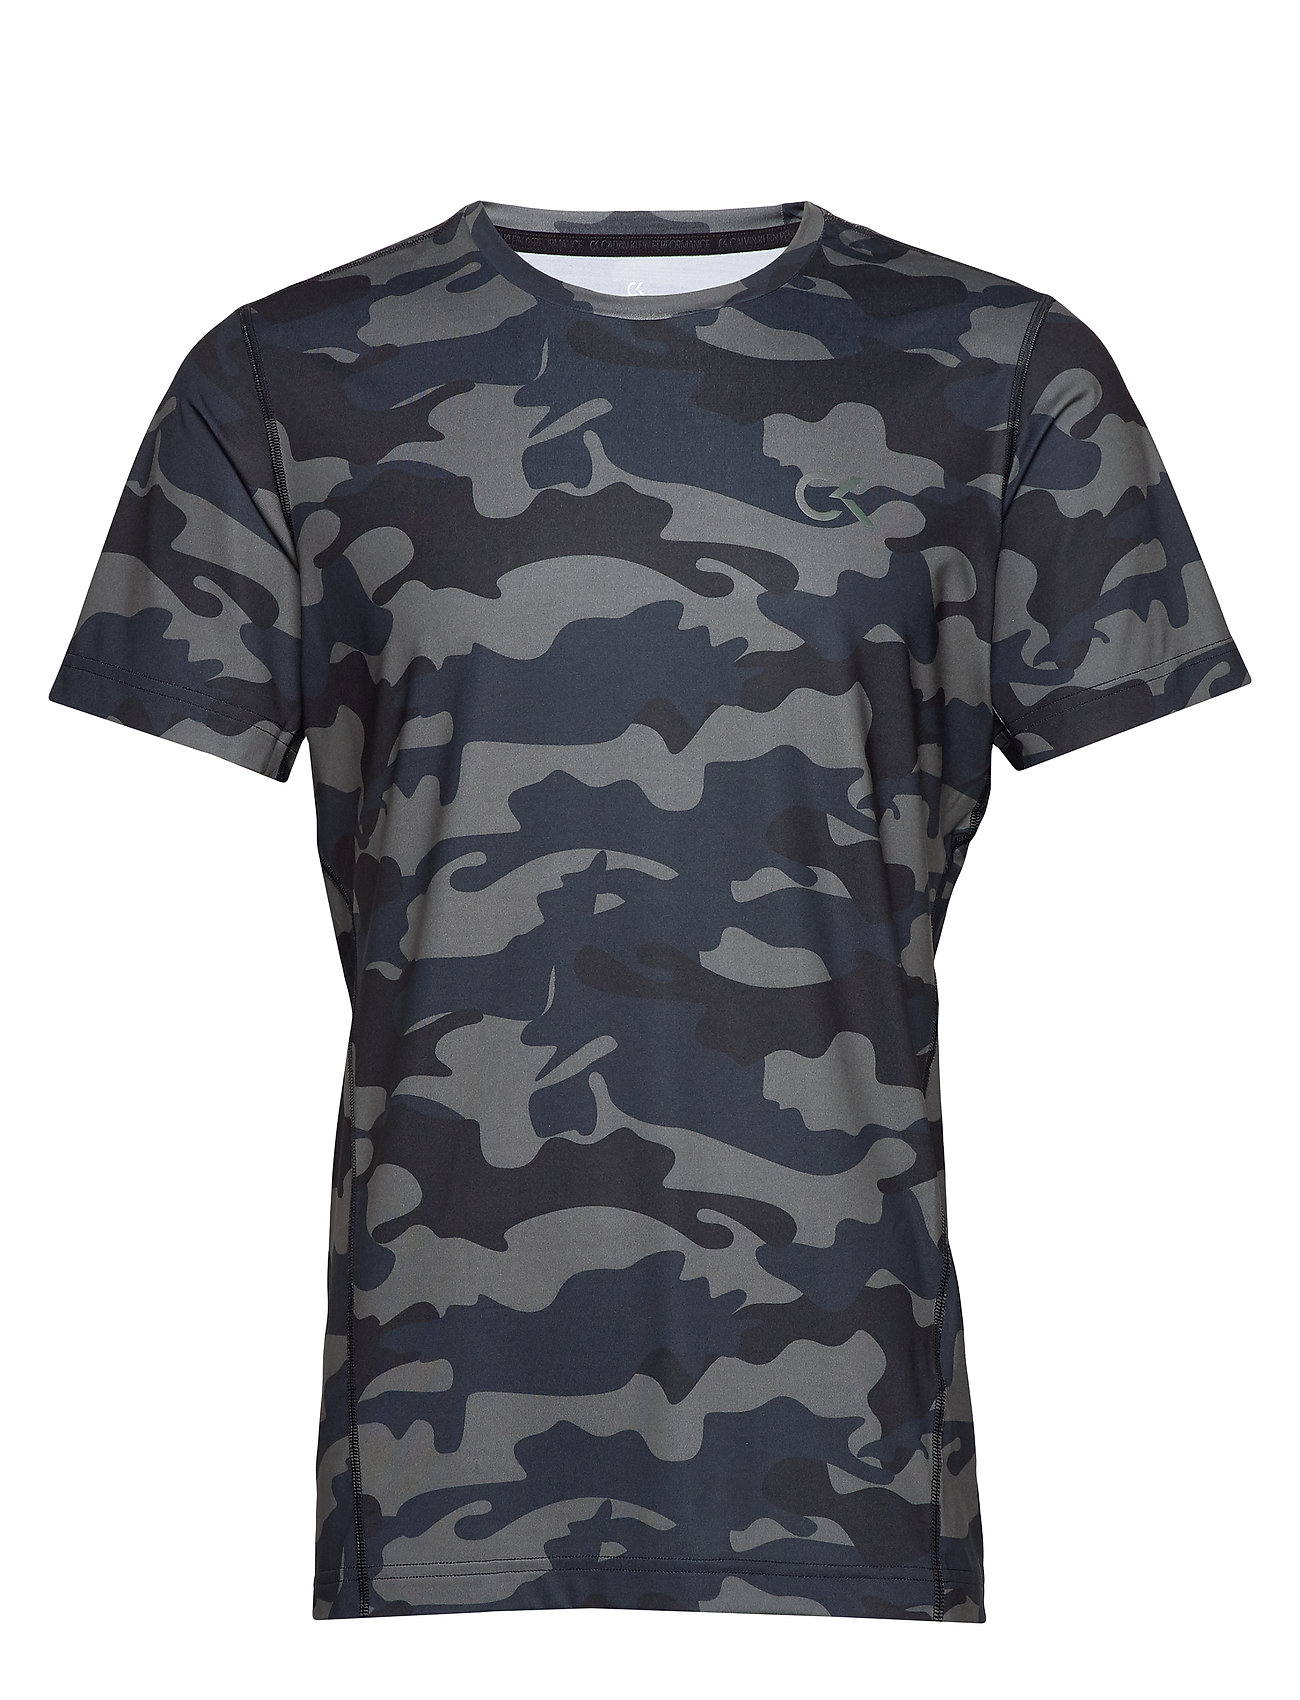 Calvin Klein Performance PERFECT WORKOUT SS TEE - BLACK CAMO